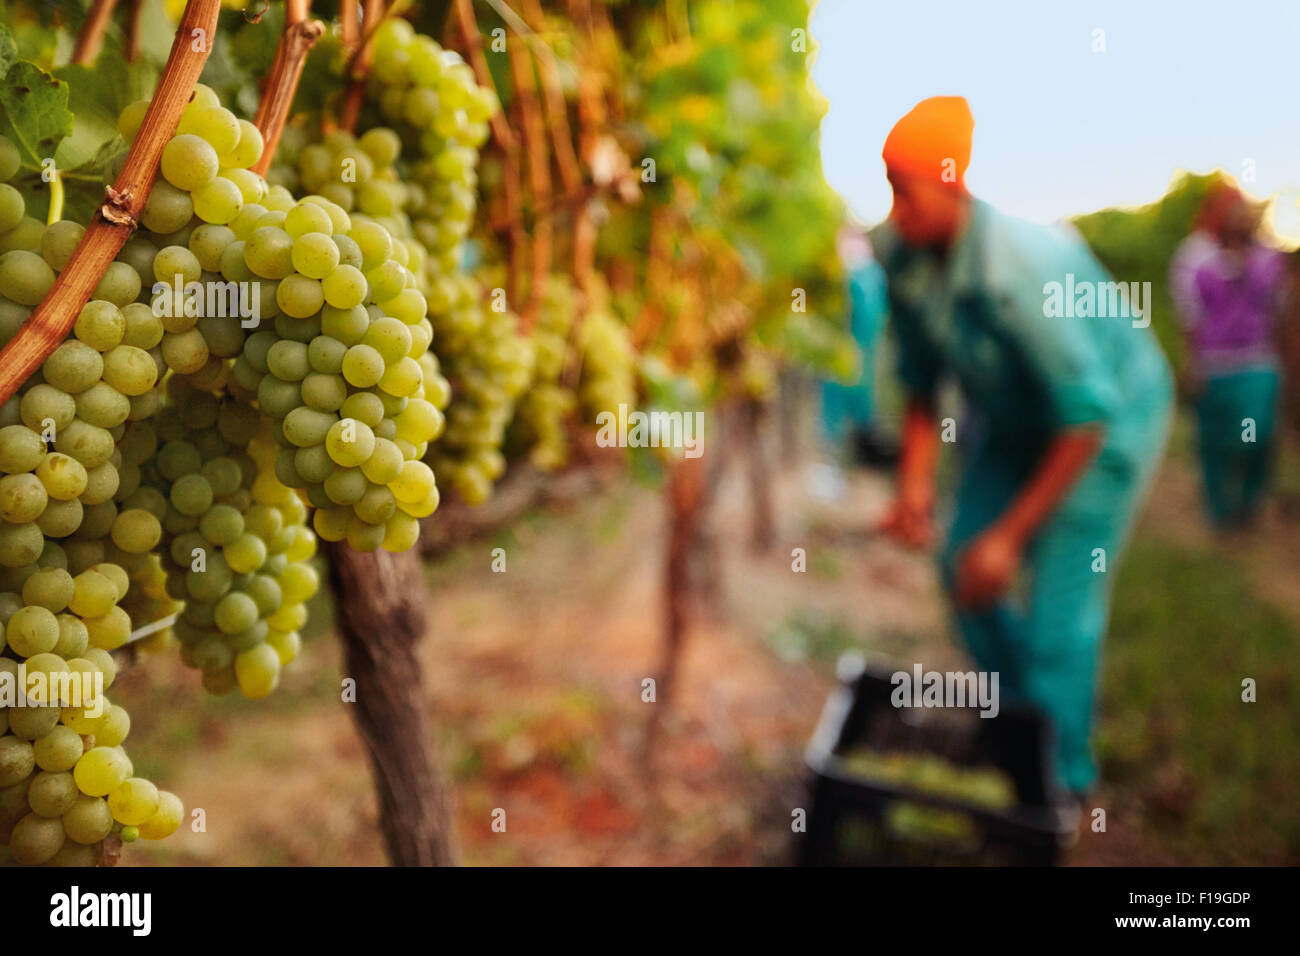 Bunch of grapes on vines at vineyard with grape picker working in background. - Stock Image